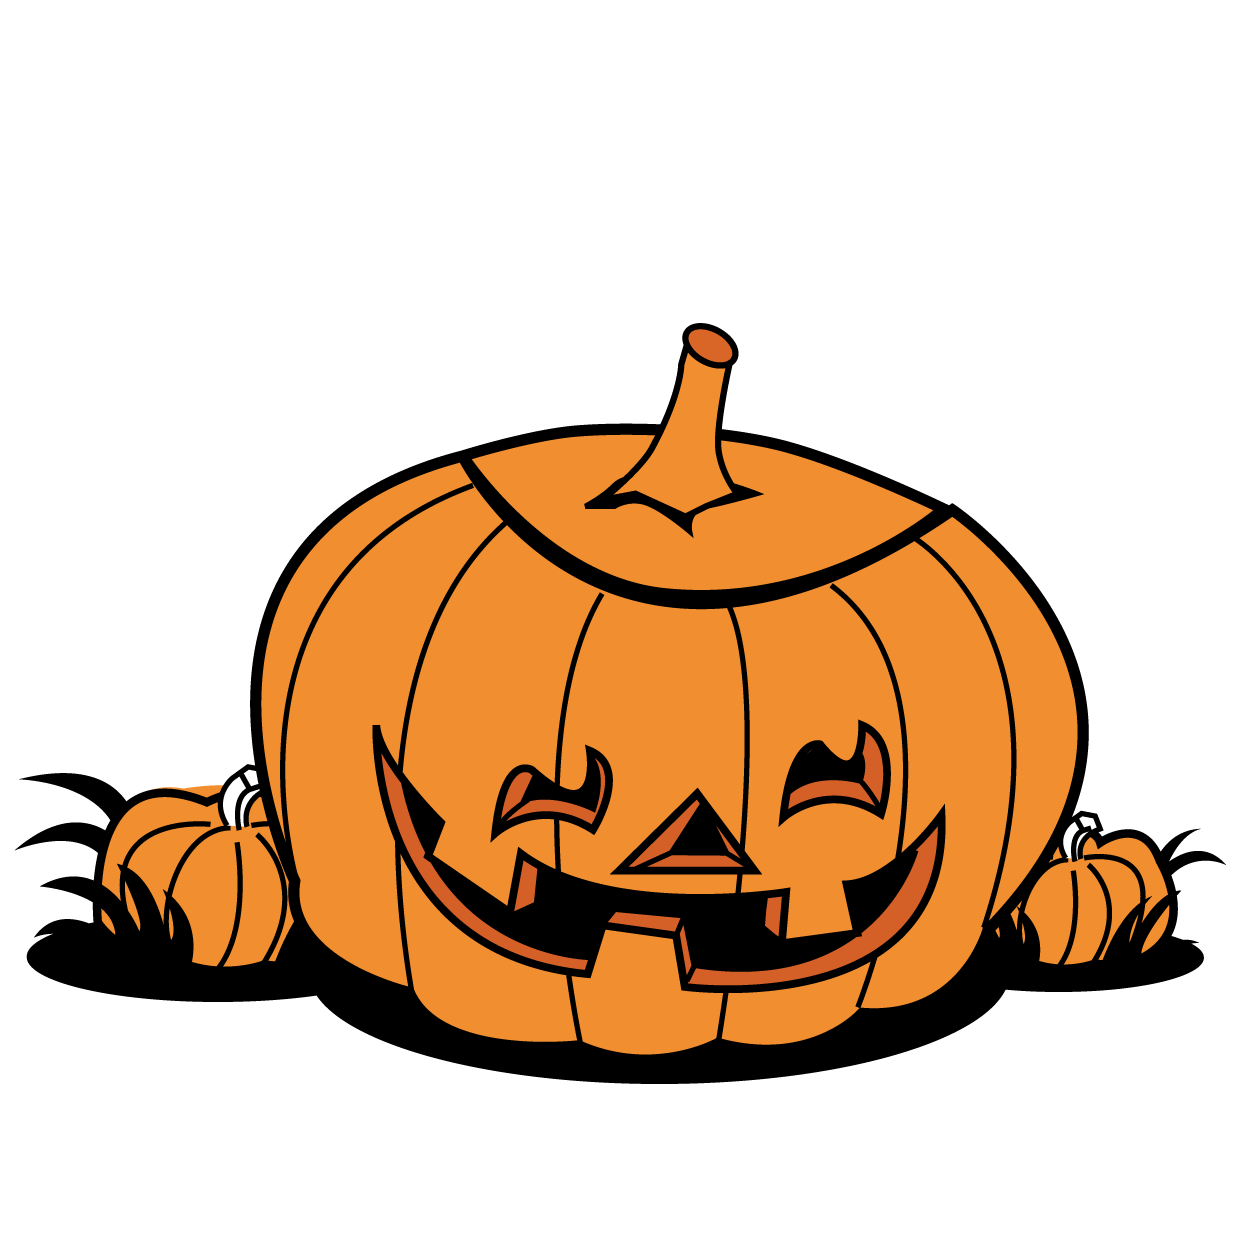 PNG Pumpkin Patch Transparent Pumpkin Patch.PNG Images ...